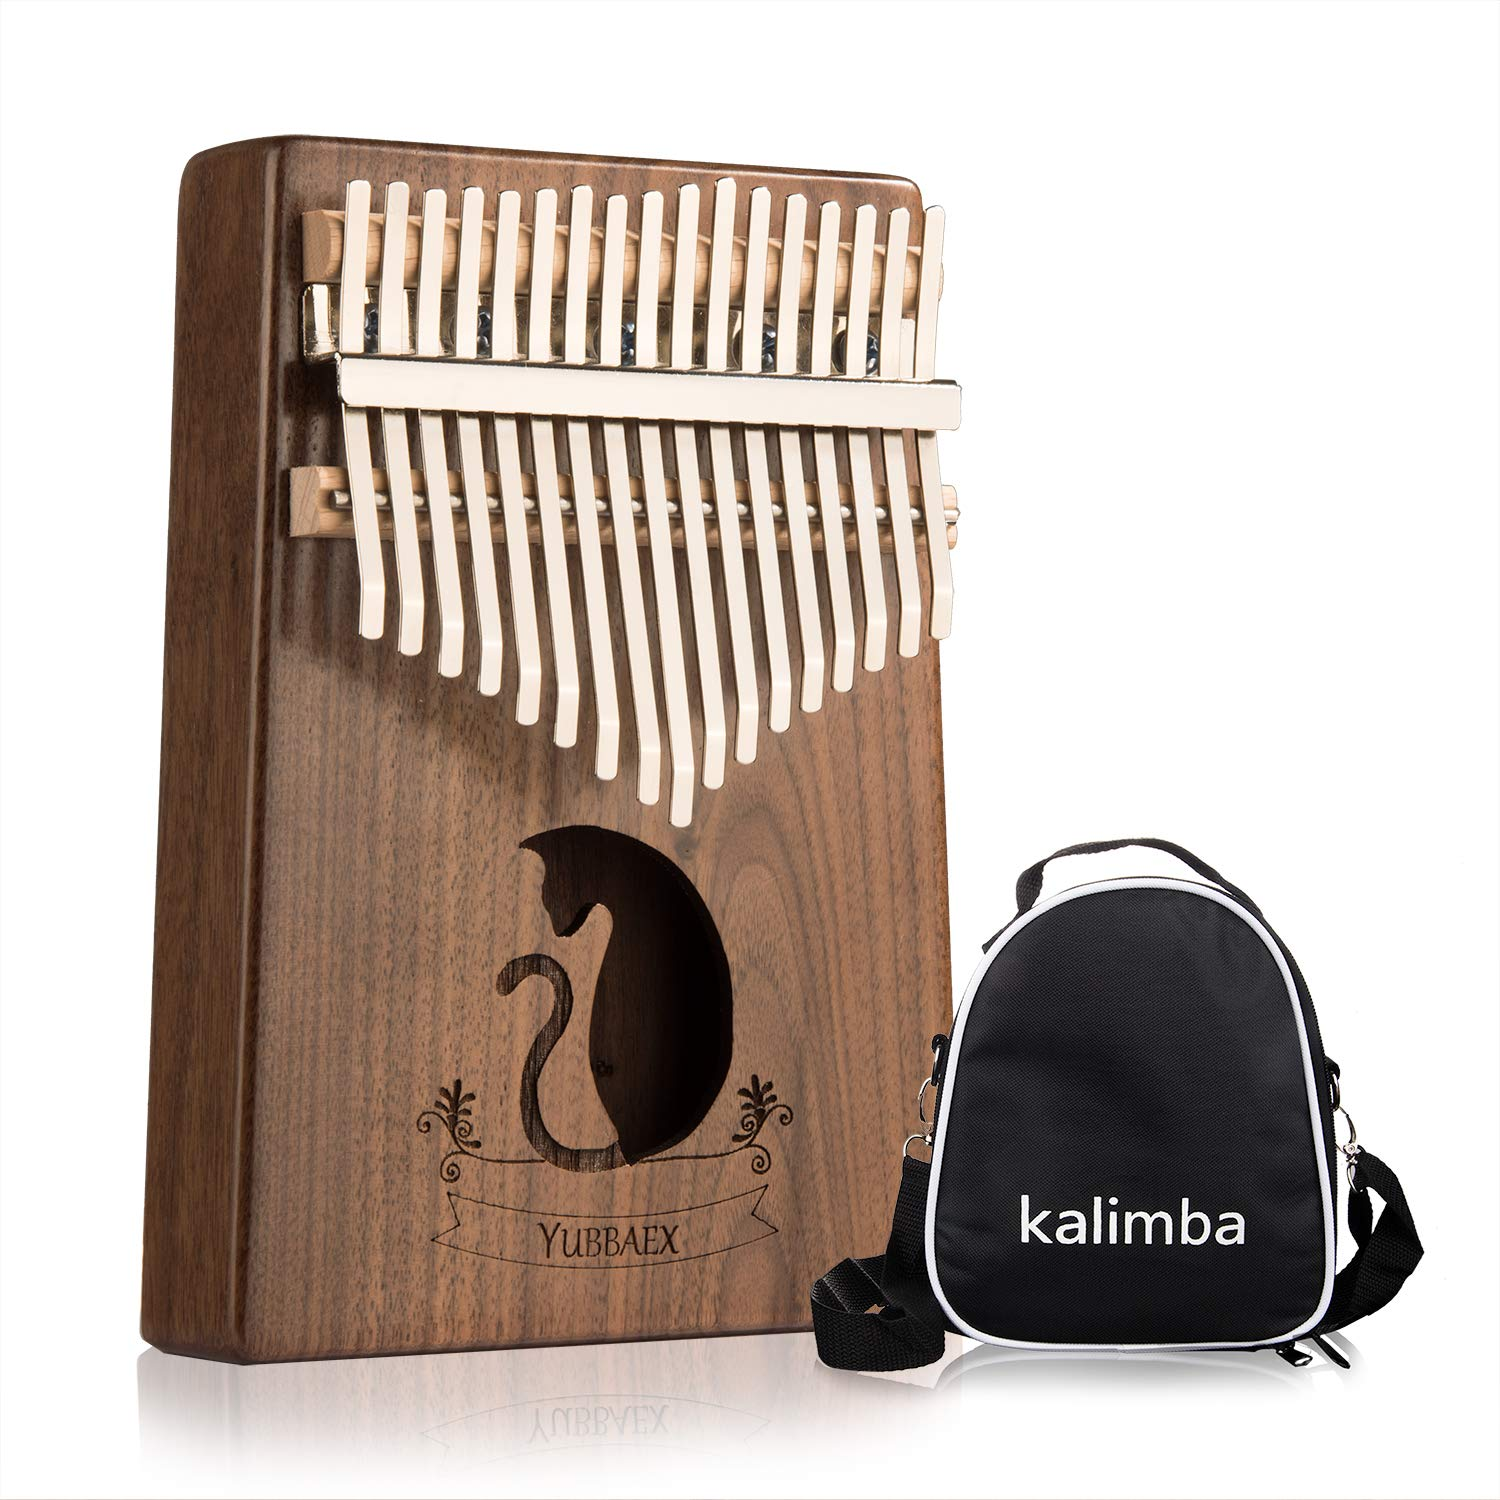 YBx Thumb Piano 17 Keys Kalimba African Animal Finger Music Instrument Gift with EVA High-performance Box (Koa Cat)